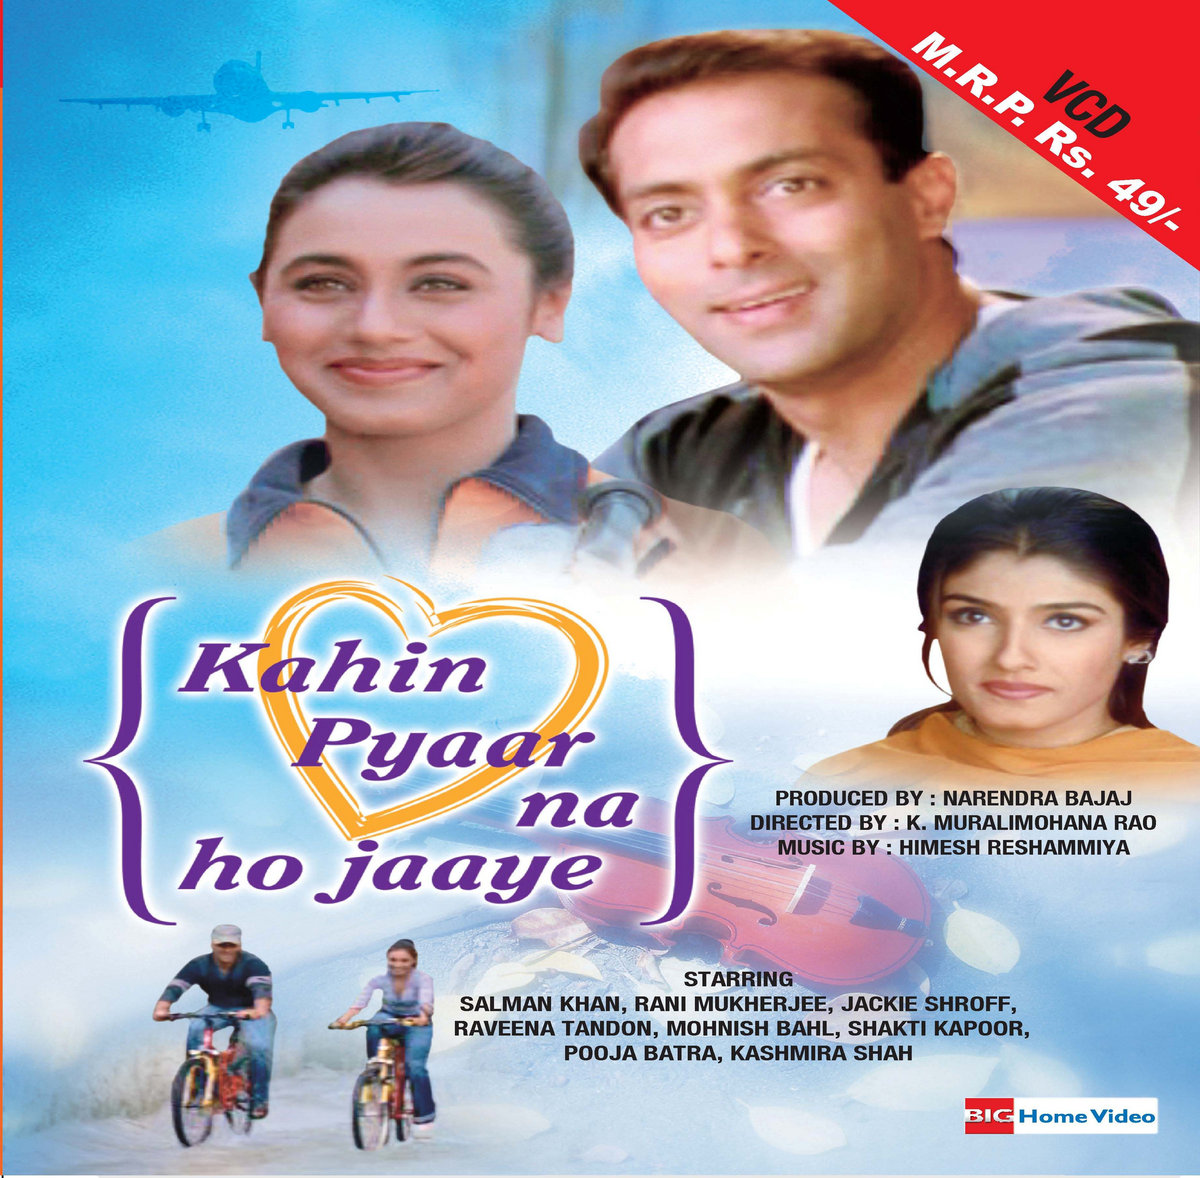 Shaadi Karke Phas Gaya Yaar Full Movie Mp4 Download | Dariellia |  undupsirepe